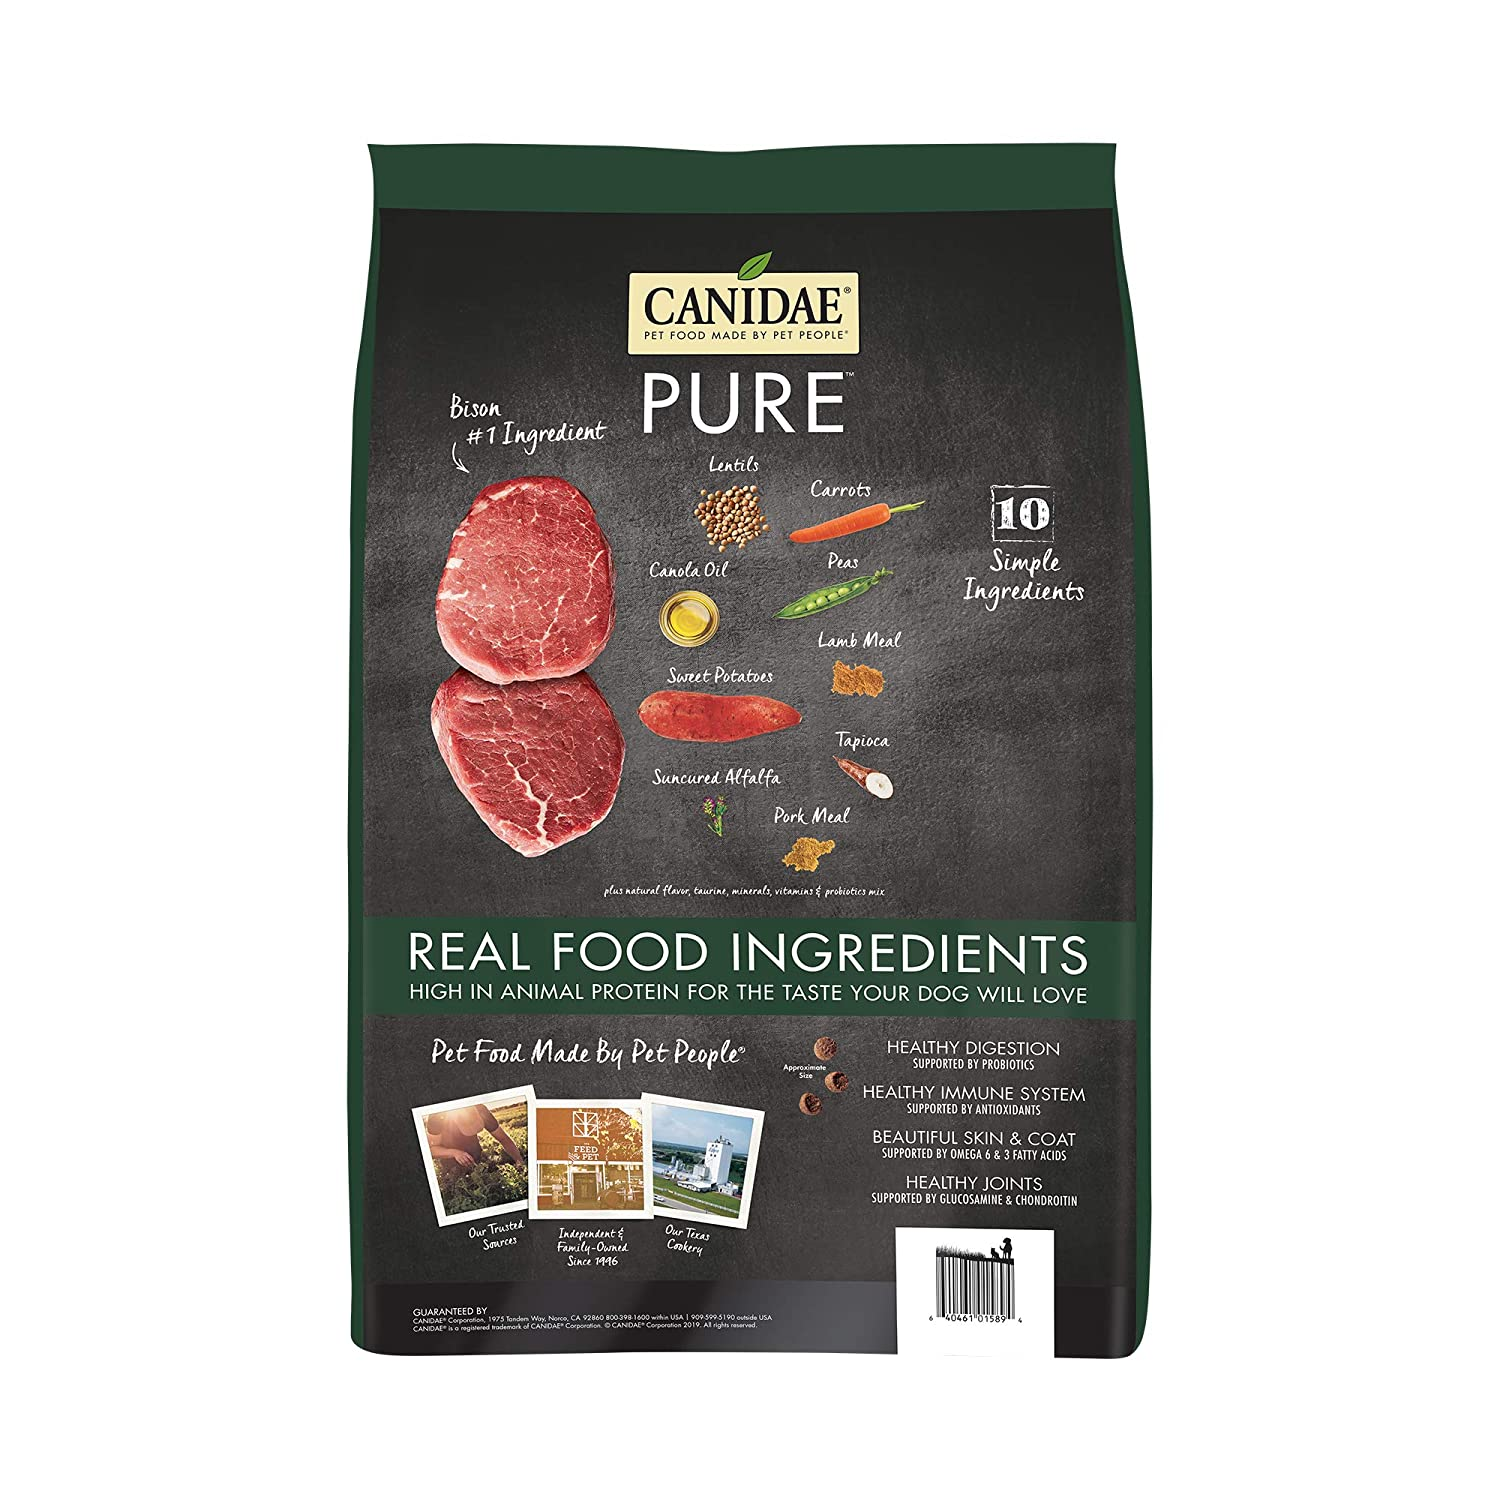 Amazon.com: CANIDAE PURE Real Bison, Lentil & Carrot Recipe Dry Dog Food 4 lbs: Pet Supplies